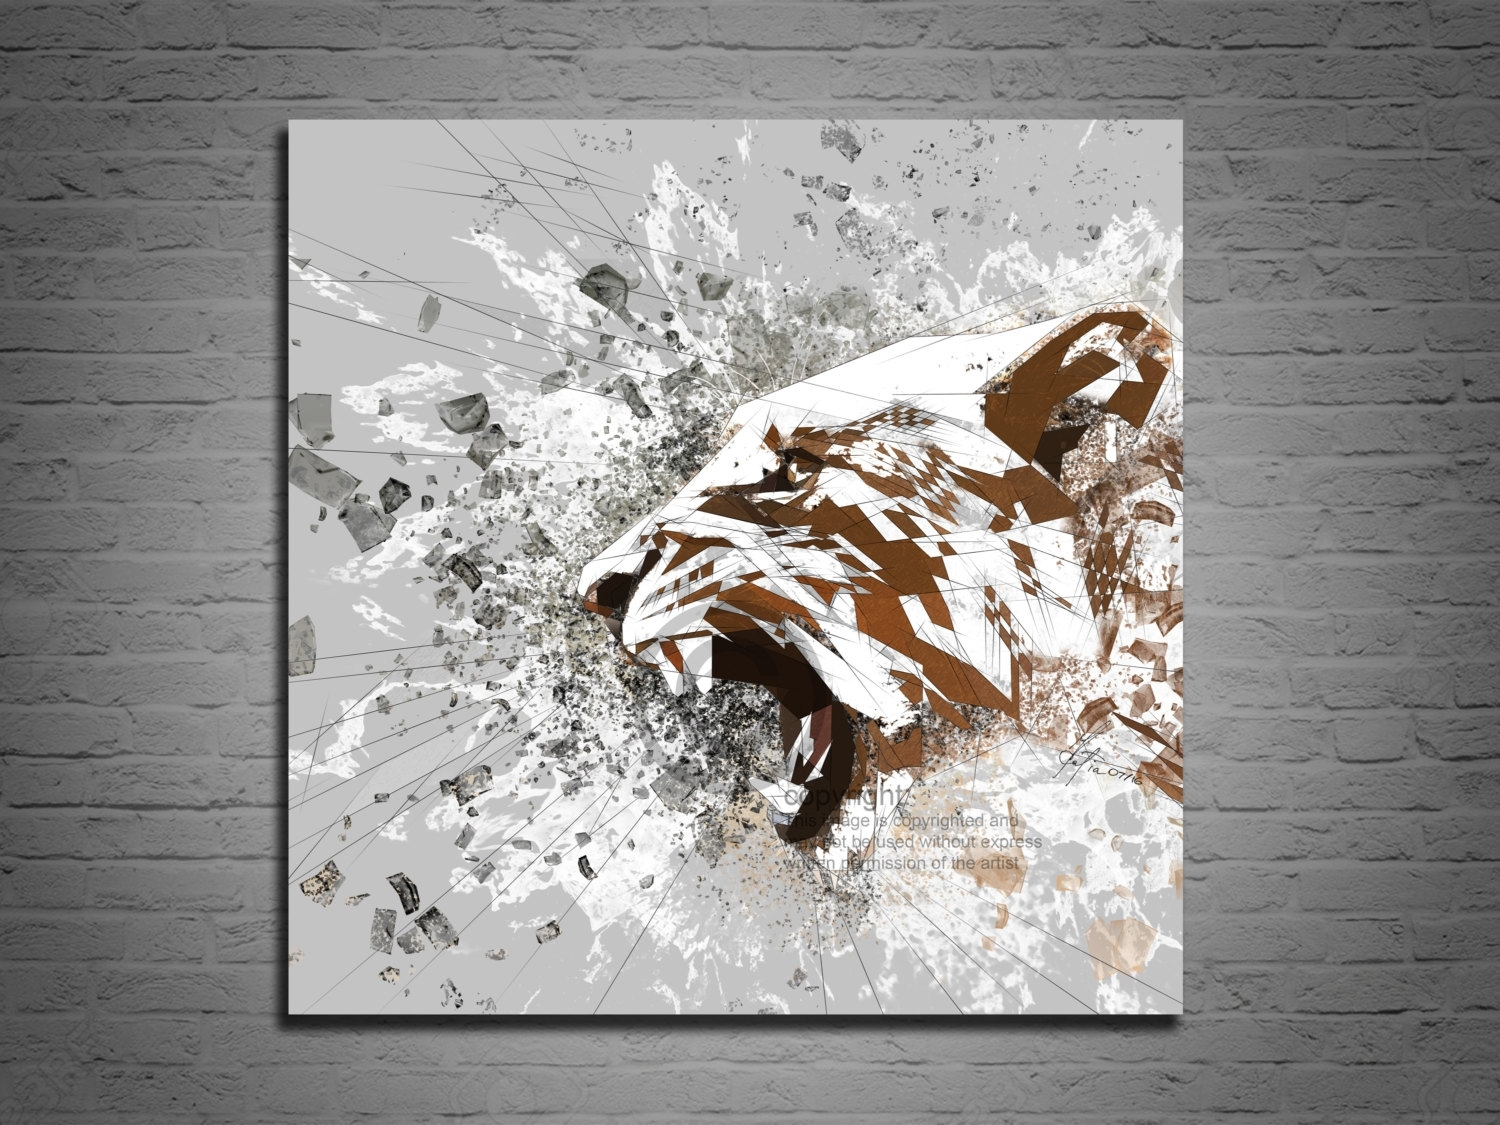 Canvas Art Print Lion Abstract Art, Living Room Decor, Roaring For Most Current Abstract Lion Wall Art (View 8 of 20)